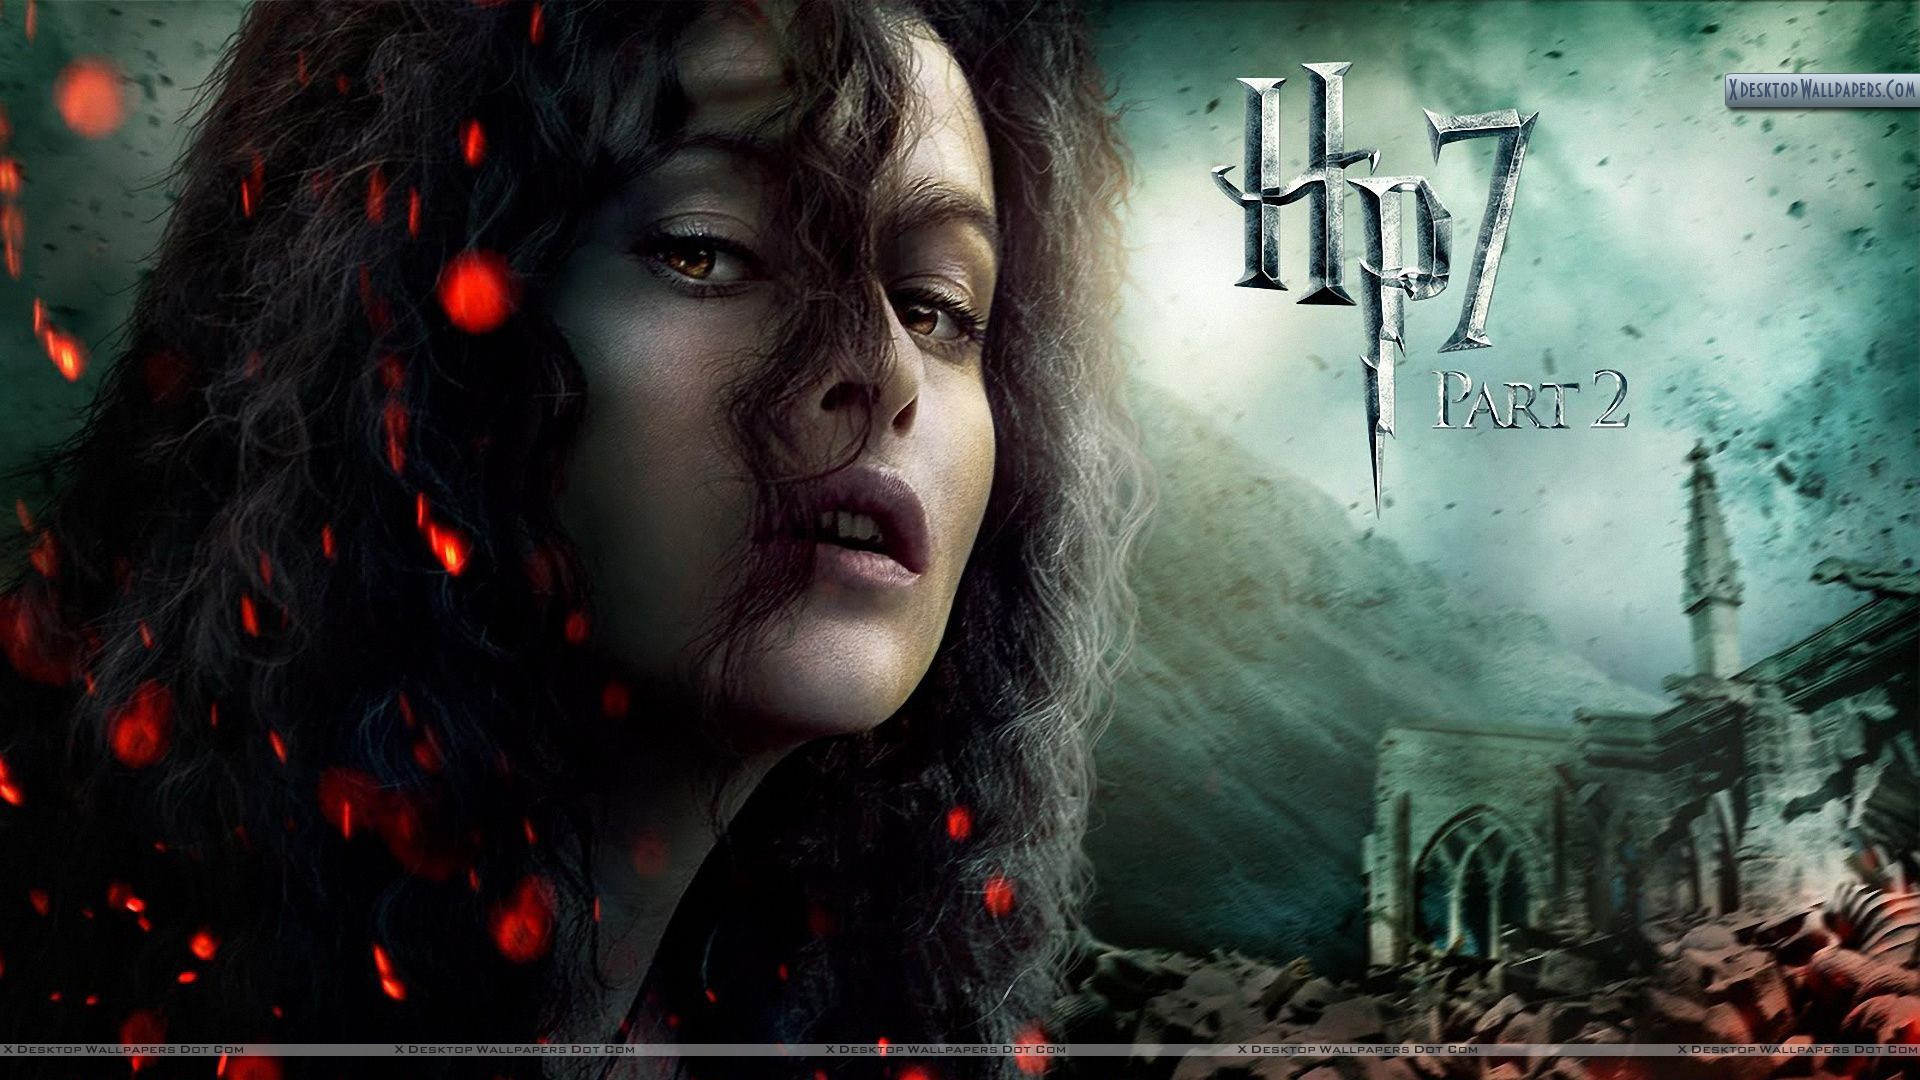 Wallpapers Harry Potter Helena Bonham Carter Face Closeups In Harry Potter And The Deathly